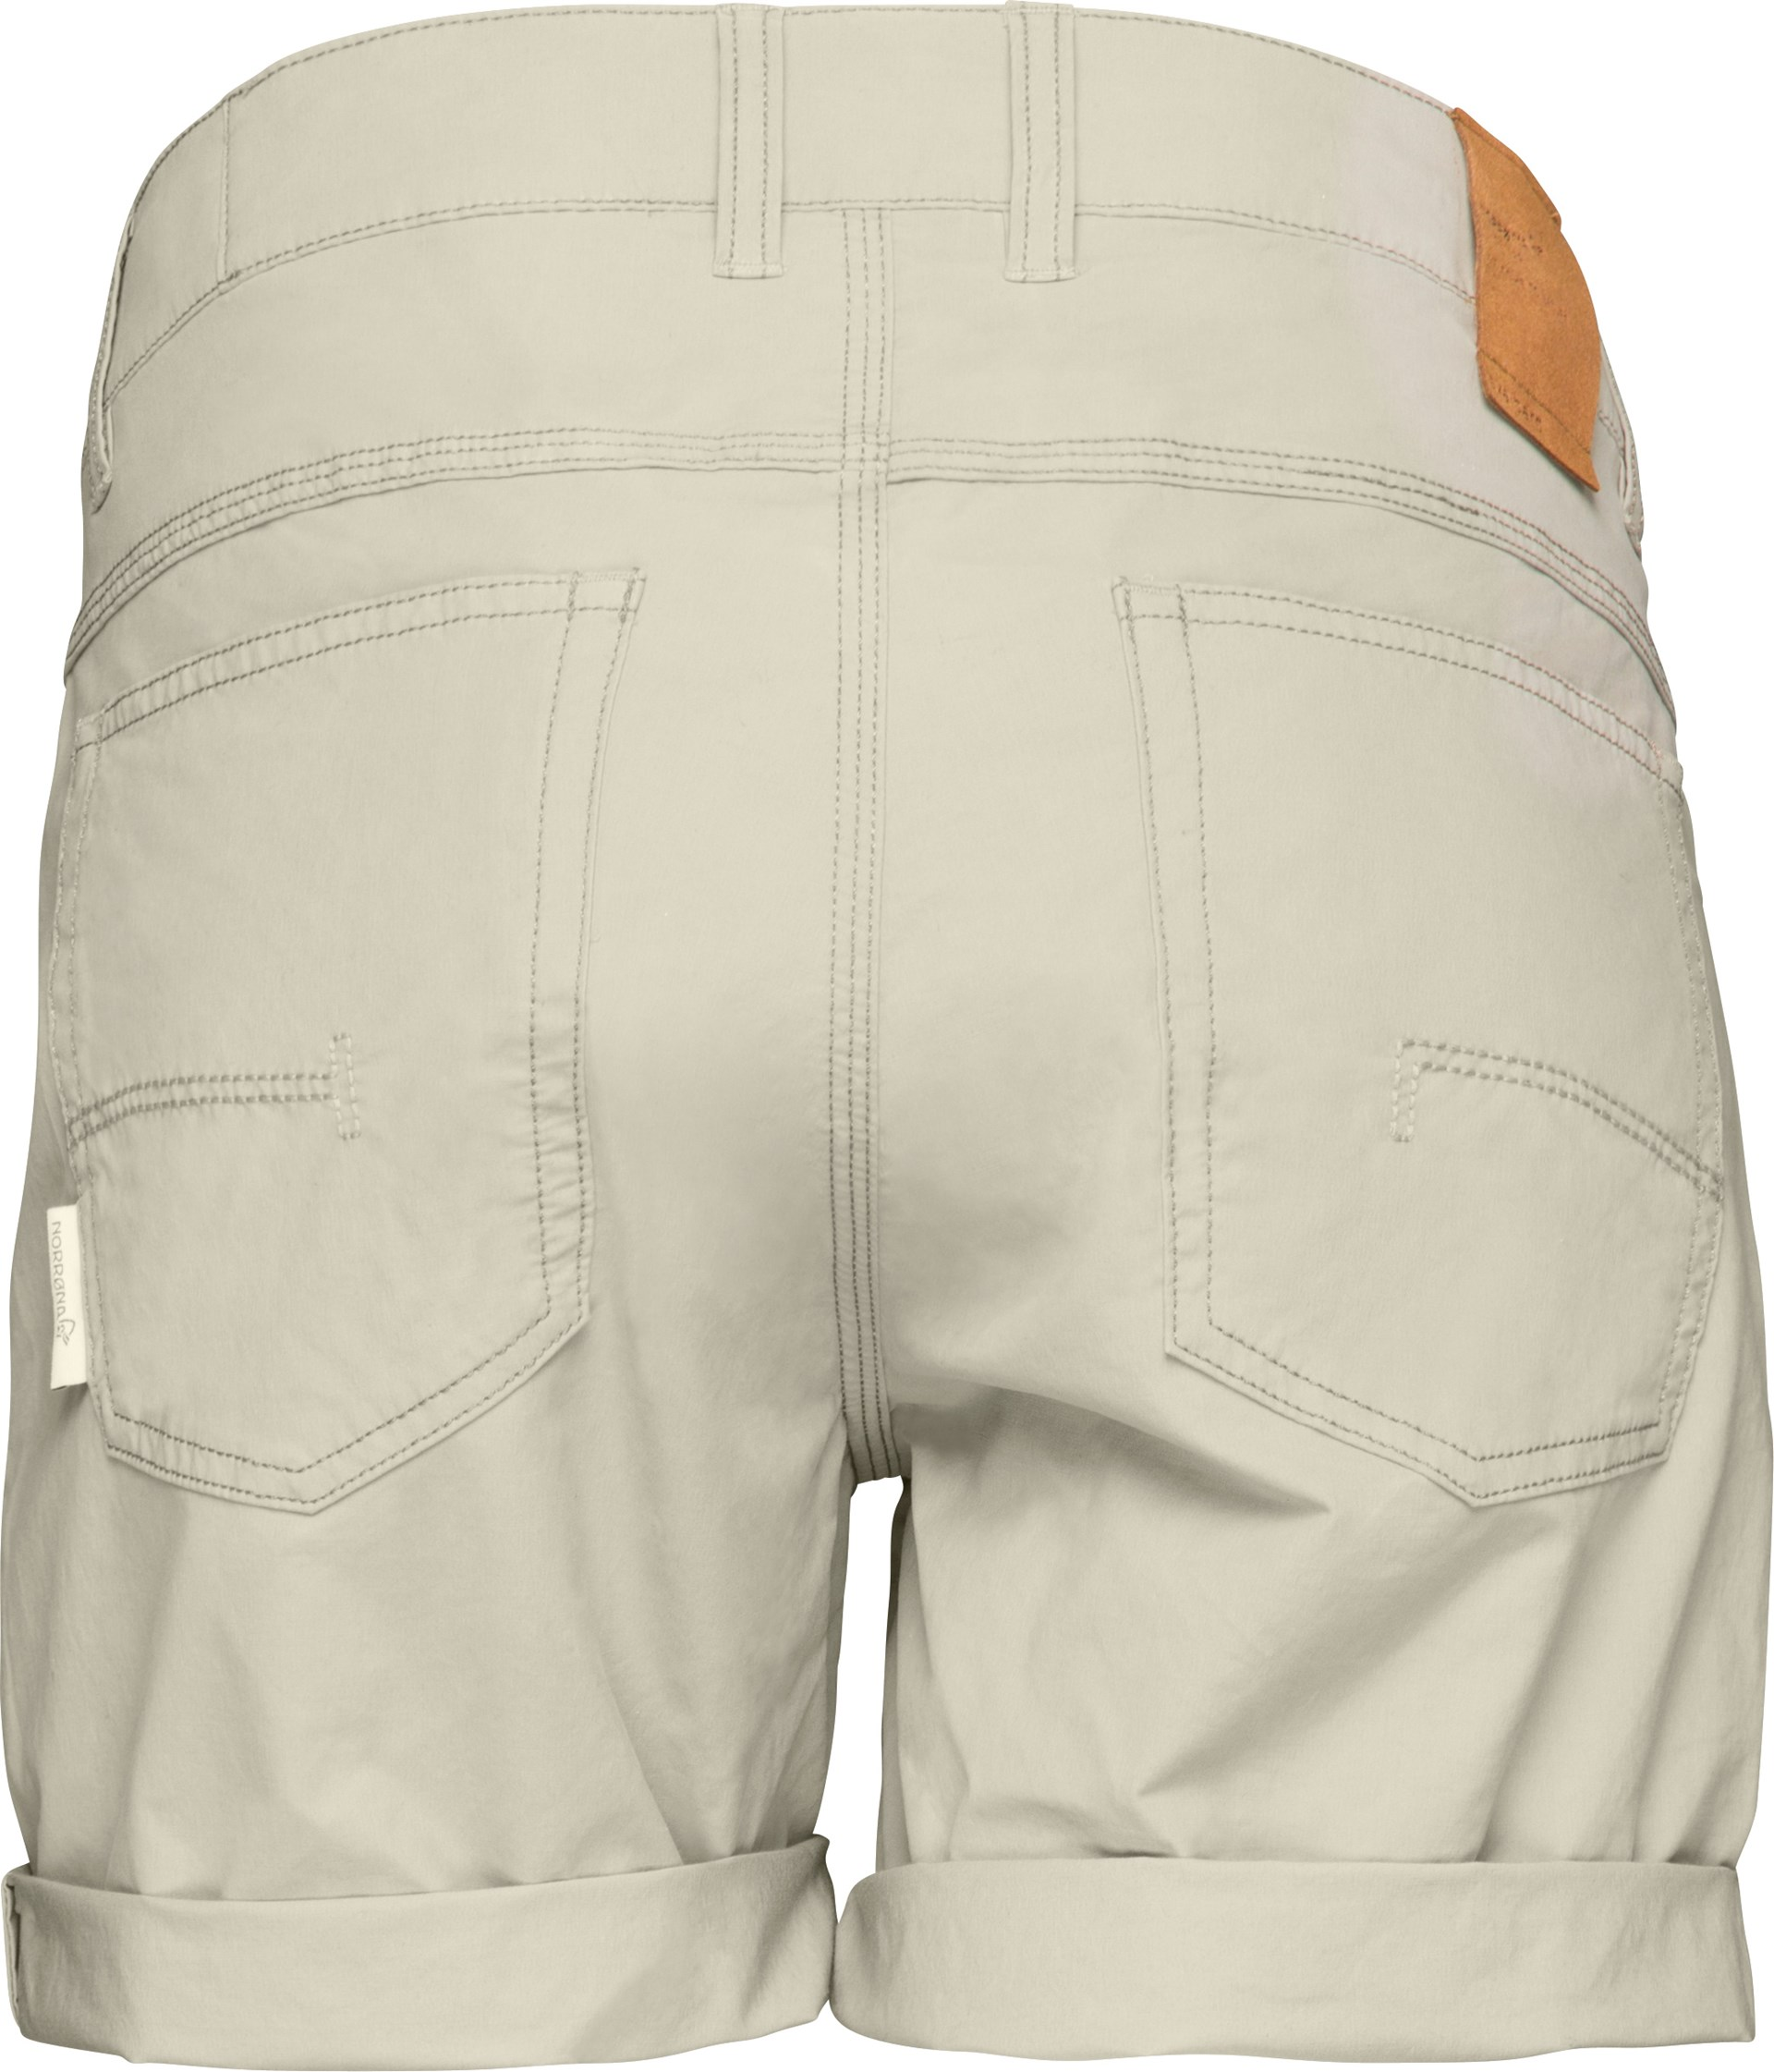 72dce6f1 Braasport - Norrøna Svalbard light cotton Shorts, dame